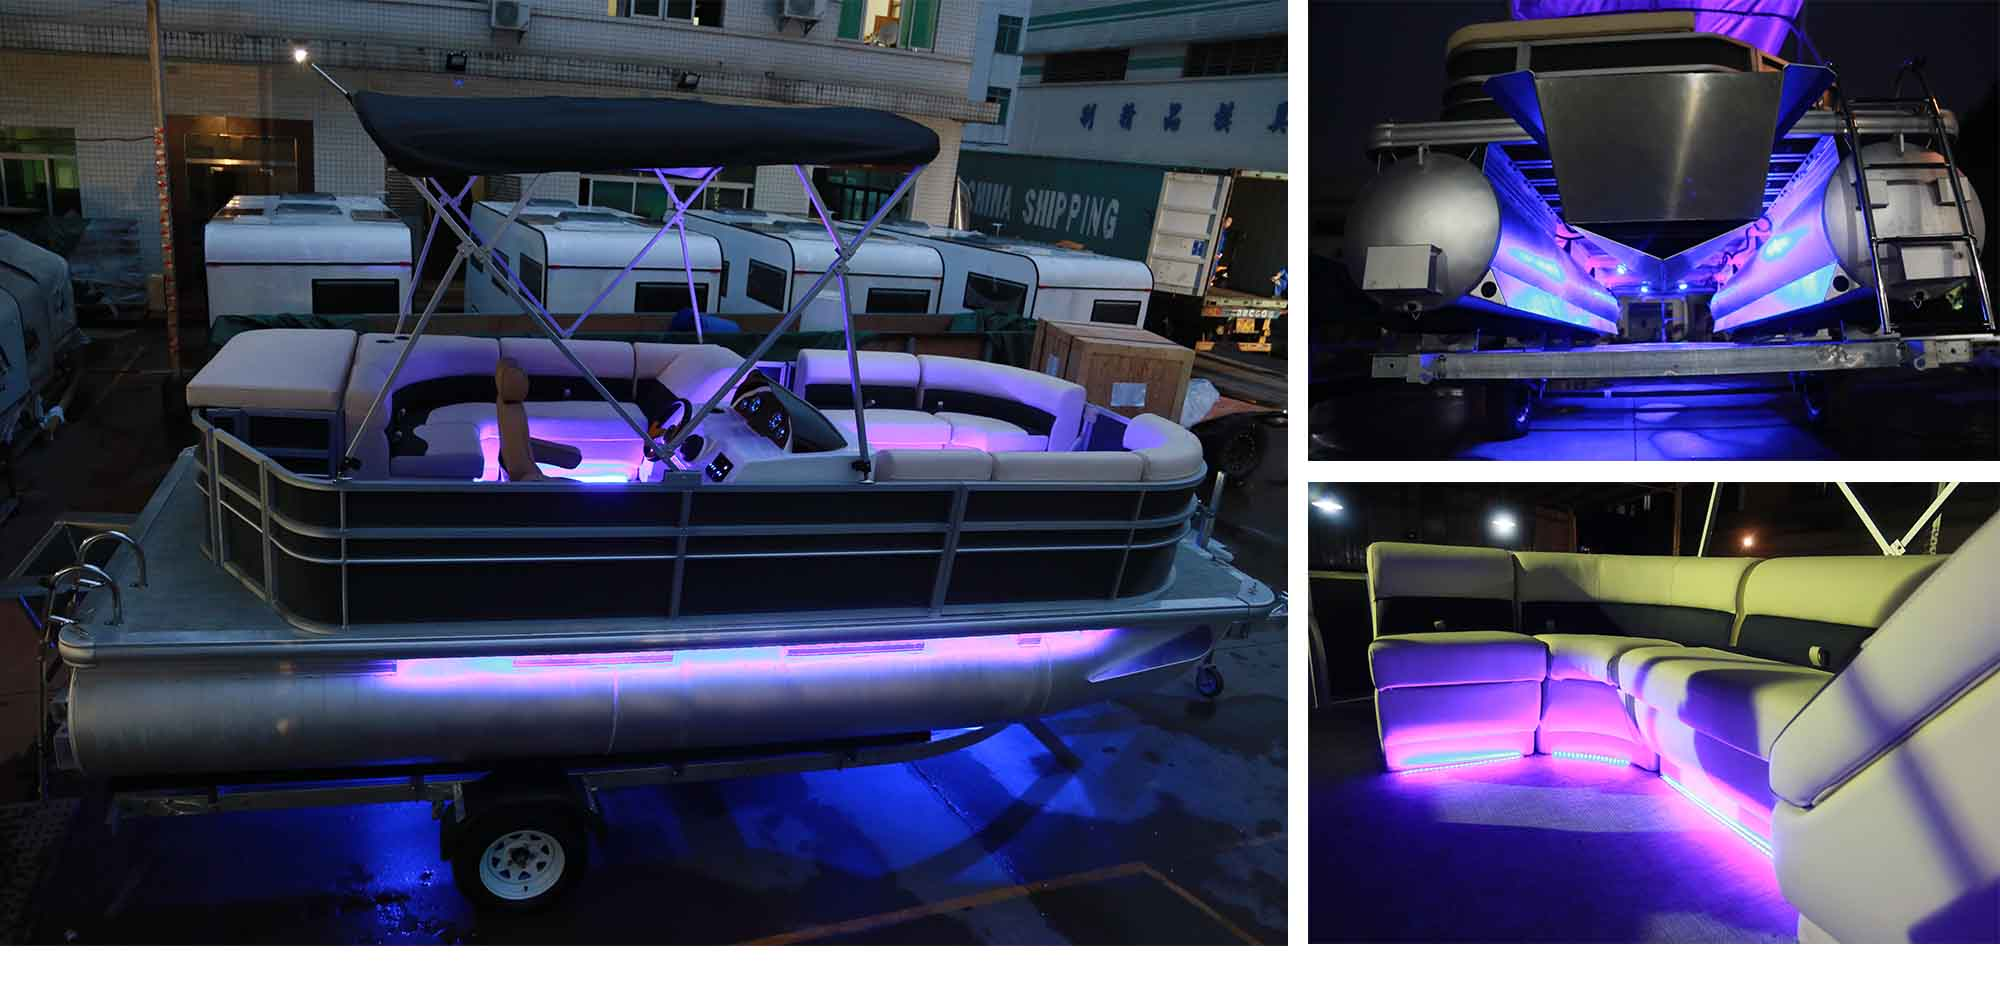 19ft Luxury Aluminium Pontoon Boat for Fishing and Party